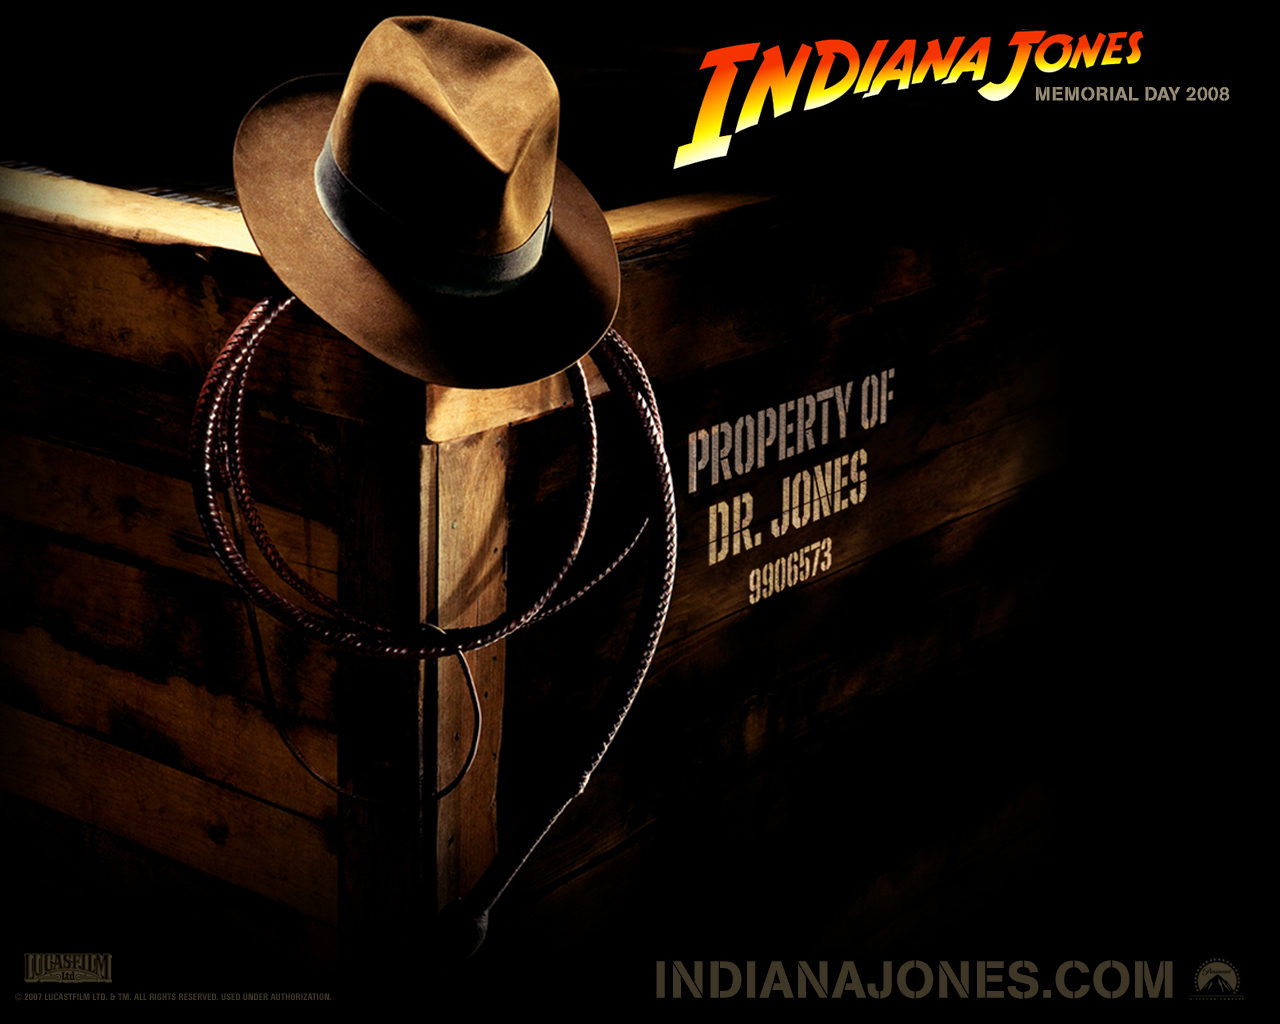 Indiana Jones 4 Sucks The Ultimate Review - Metacafe